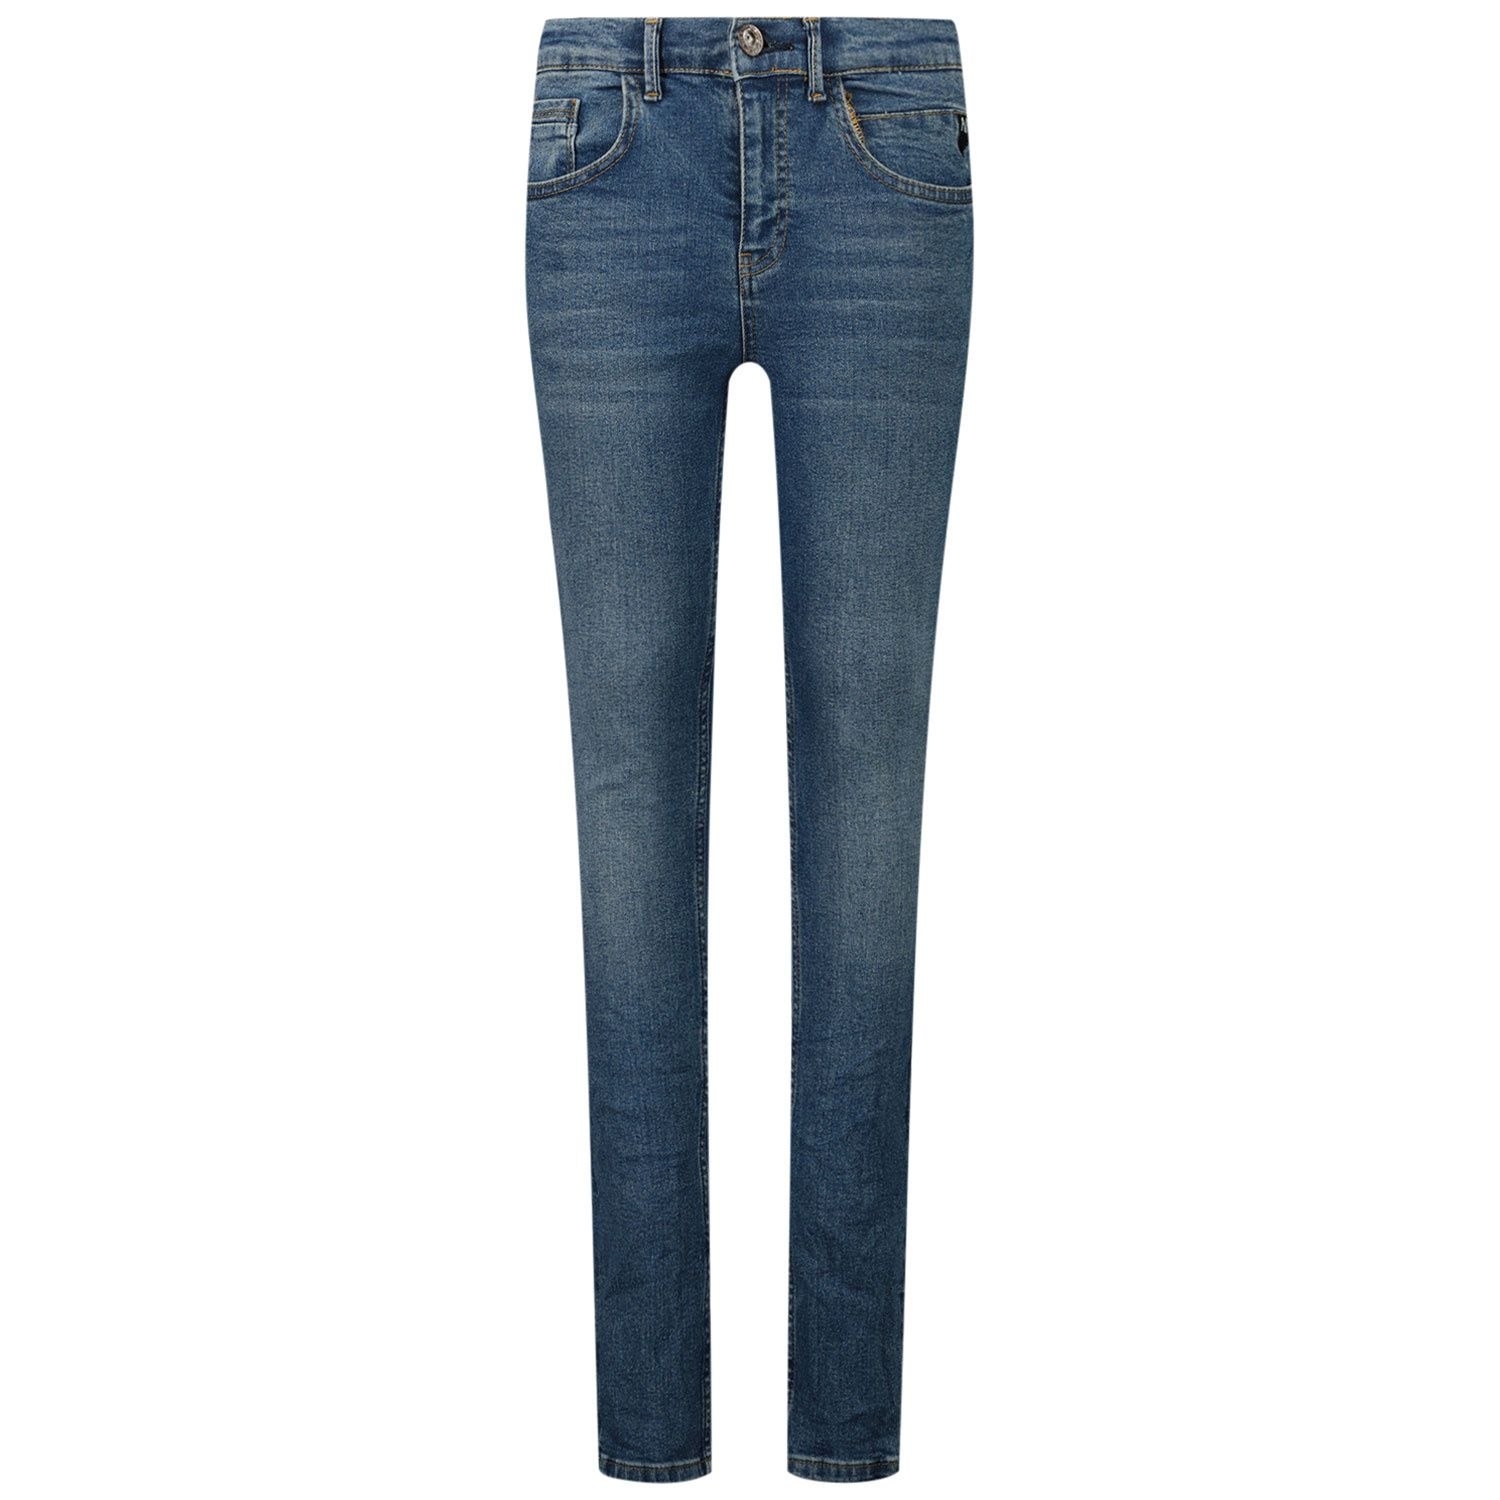 Picture of NIK&NIK G2106 kids jeans jeans